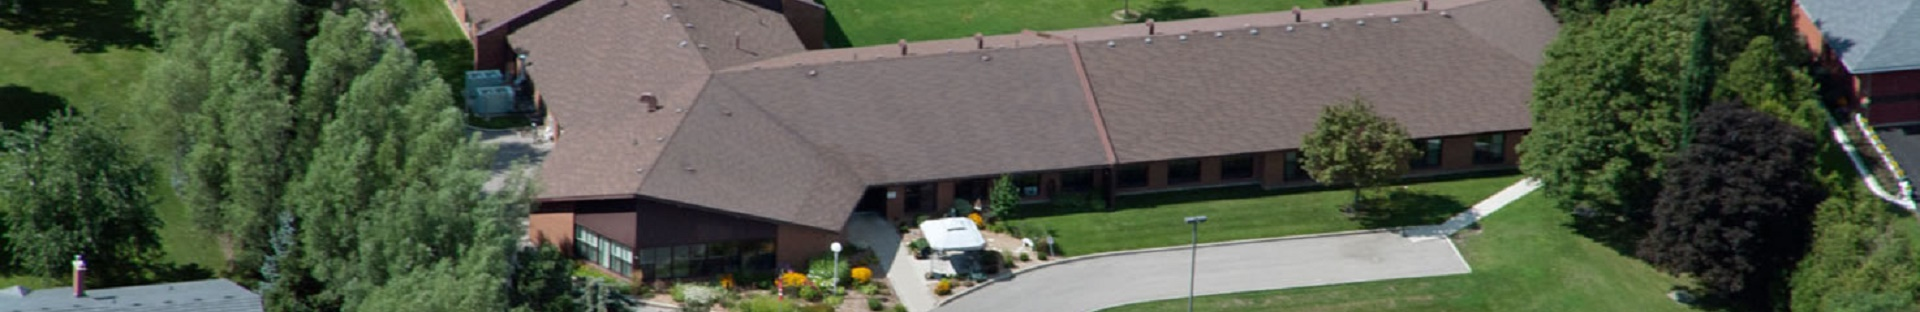 mitchell_nursing_home_aerial